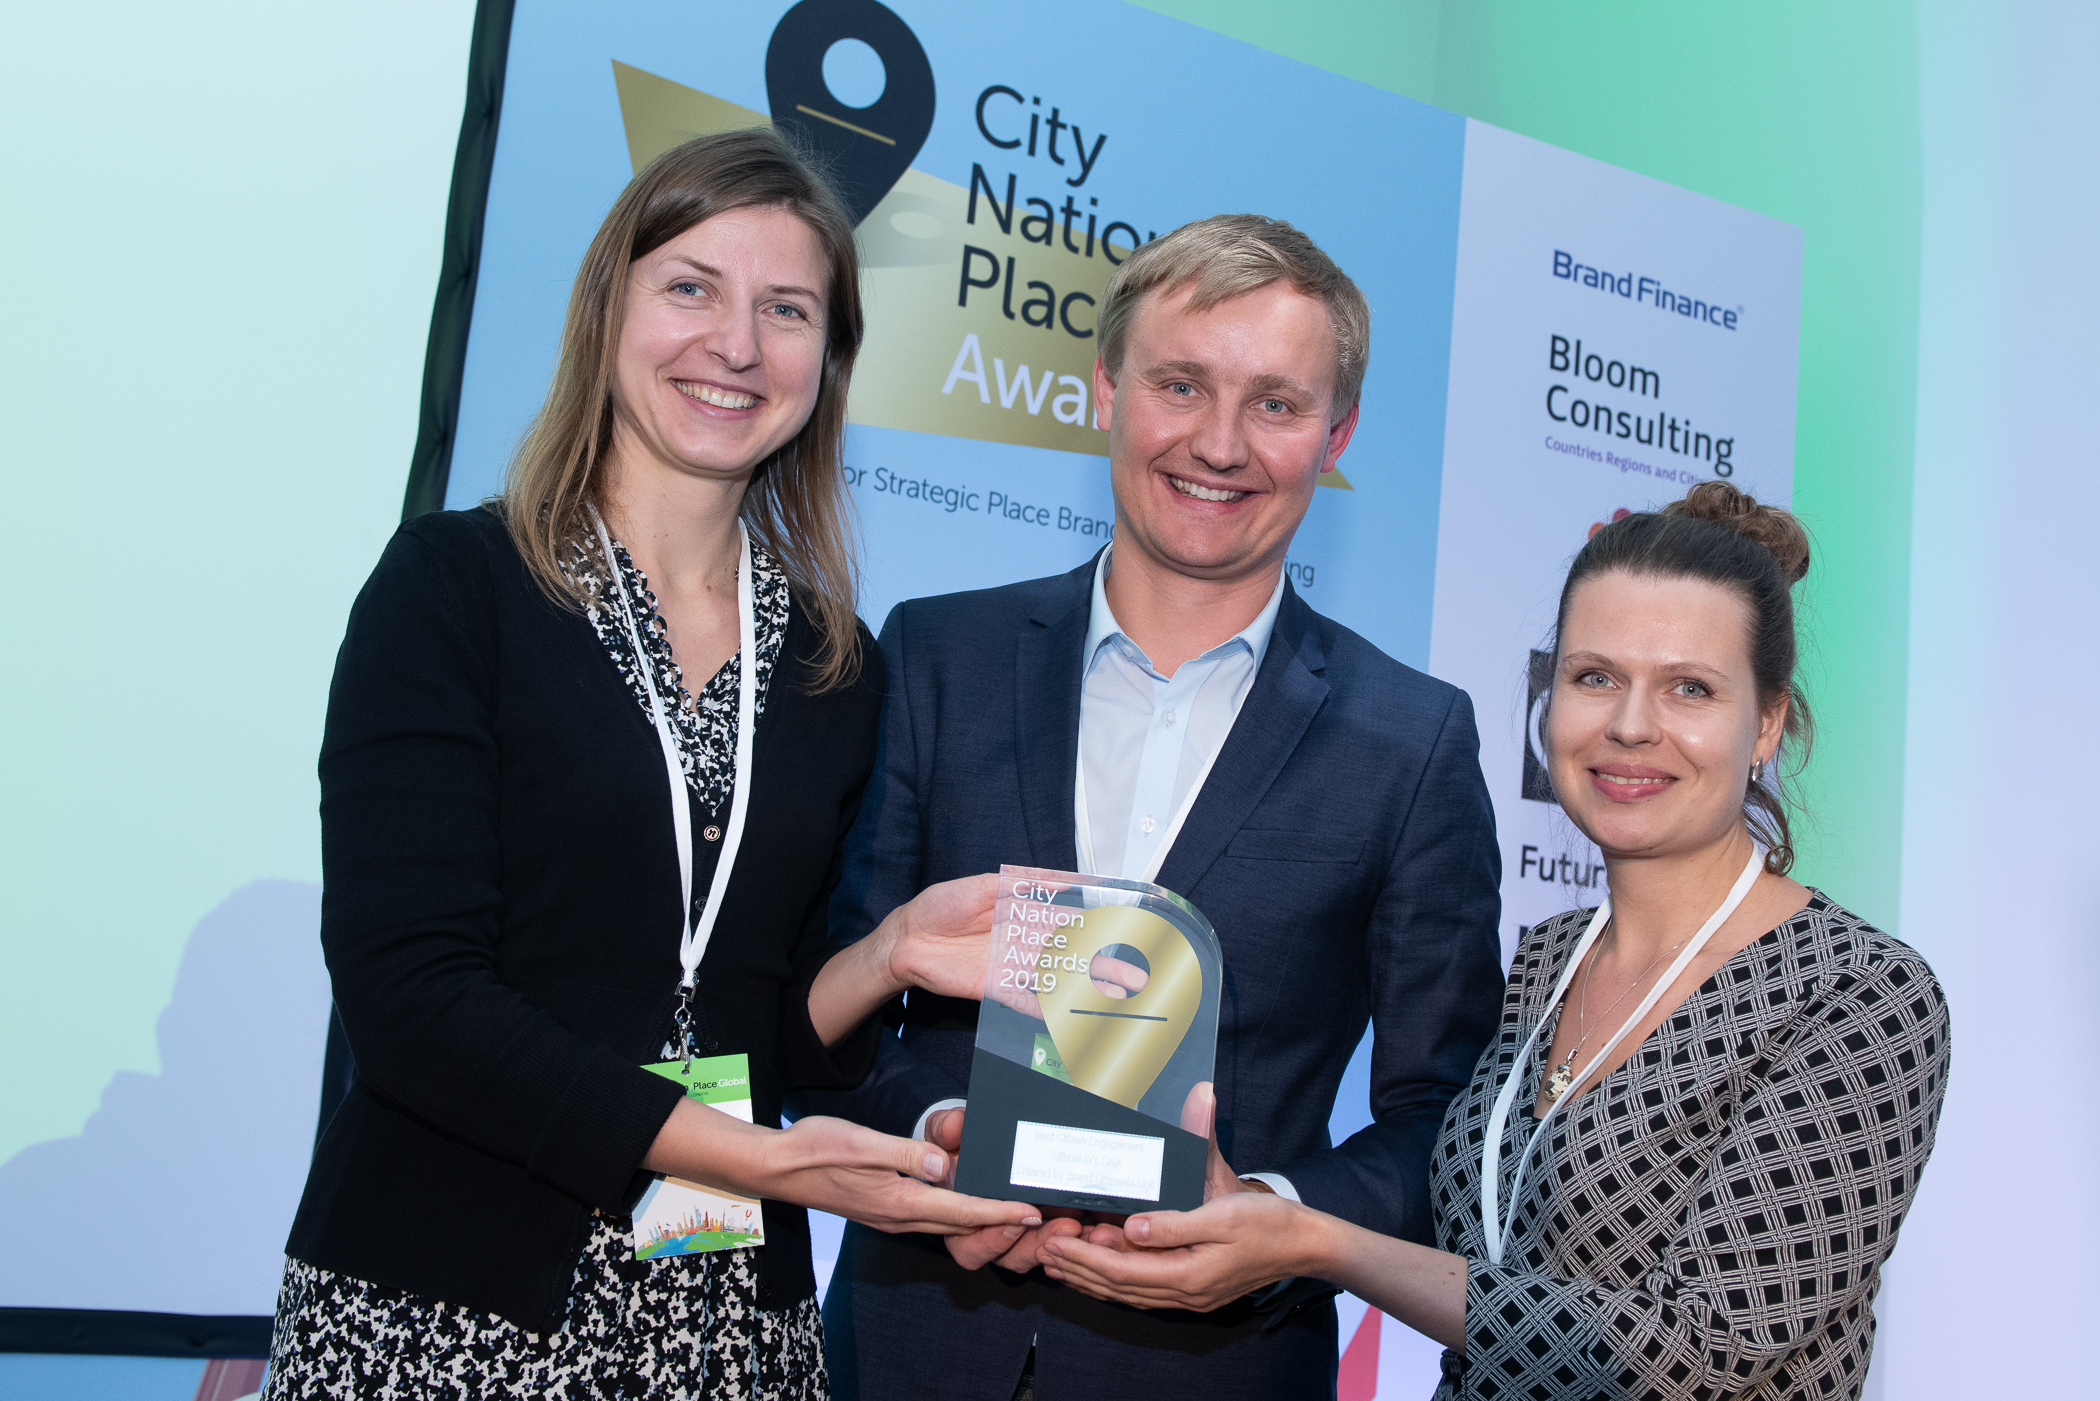 The team from Lithuania celebrate winning the 2019 Best Citizen Engagement Award